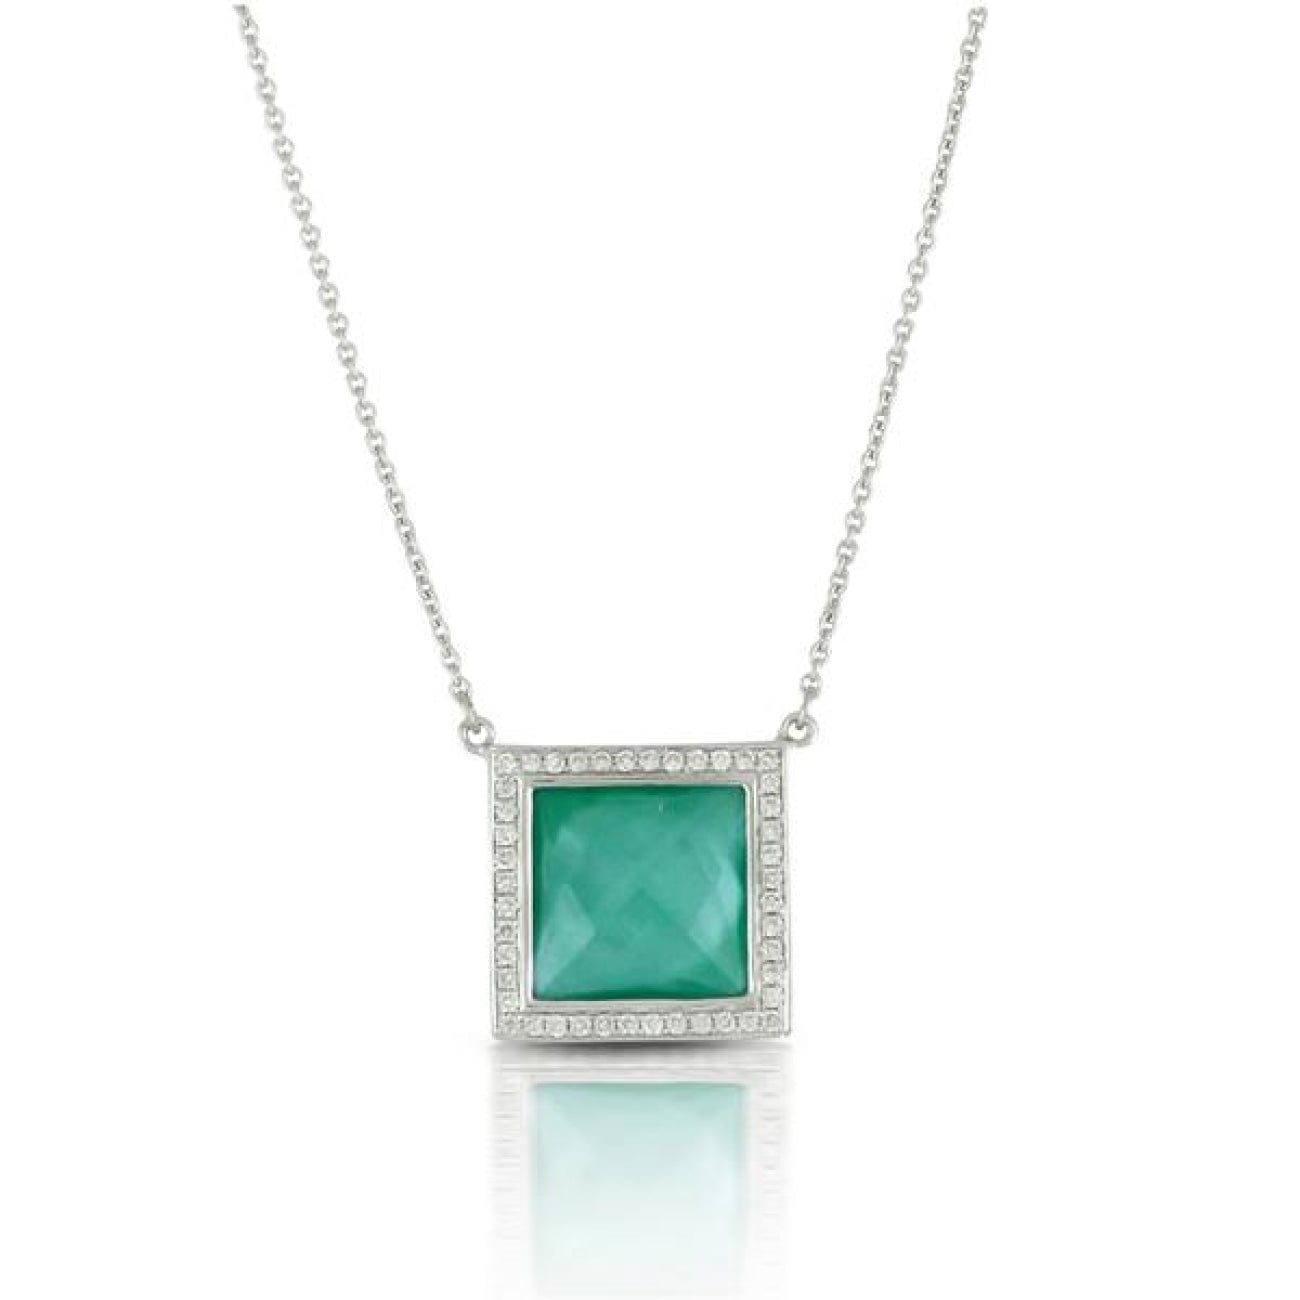 Doves Jewelry - Cypress Grove Collection Necklace | Manfredi Jewels